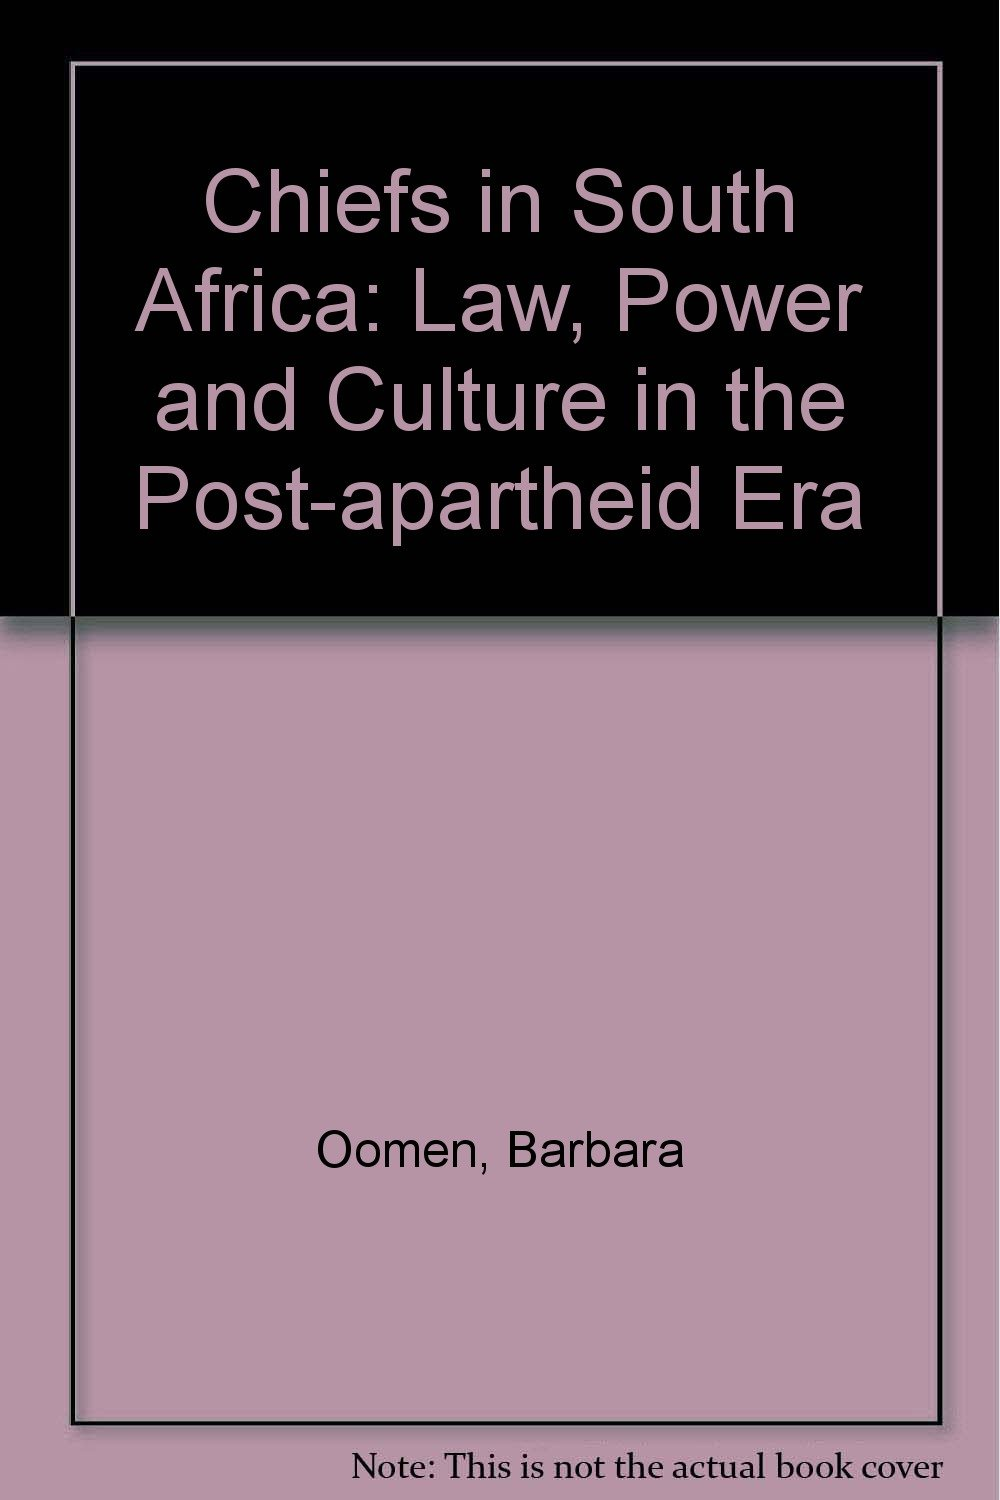 Chiefs in South Africa: Law, Power and Culture in the Post-apartheid Era pdf